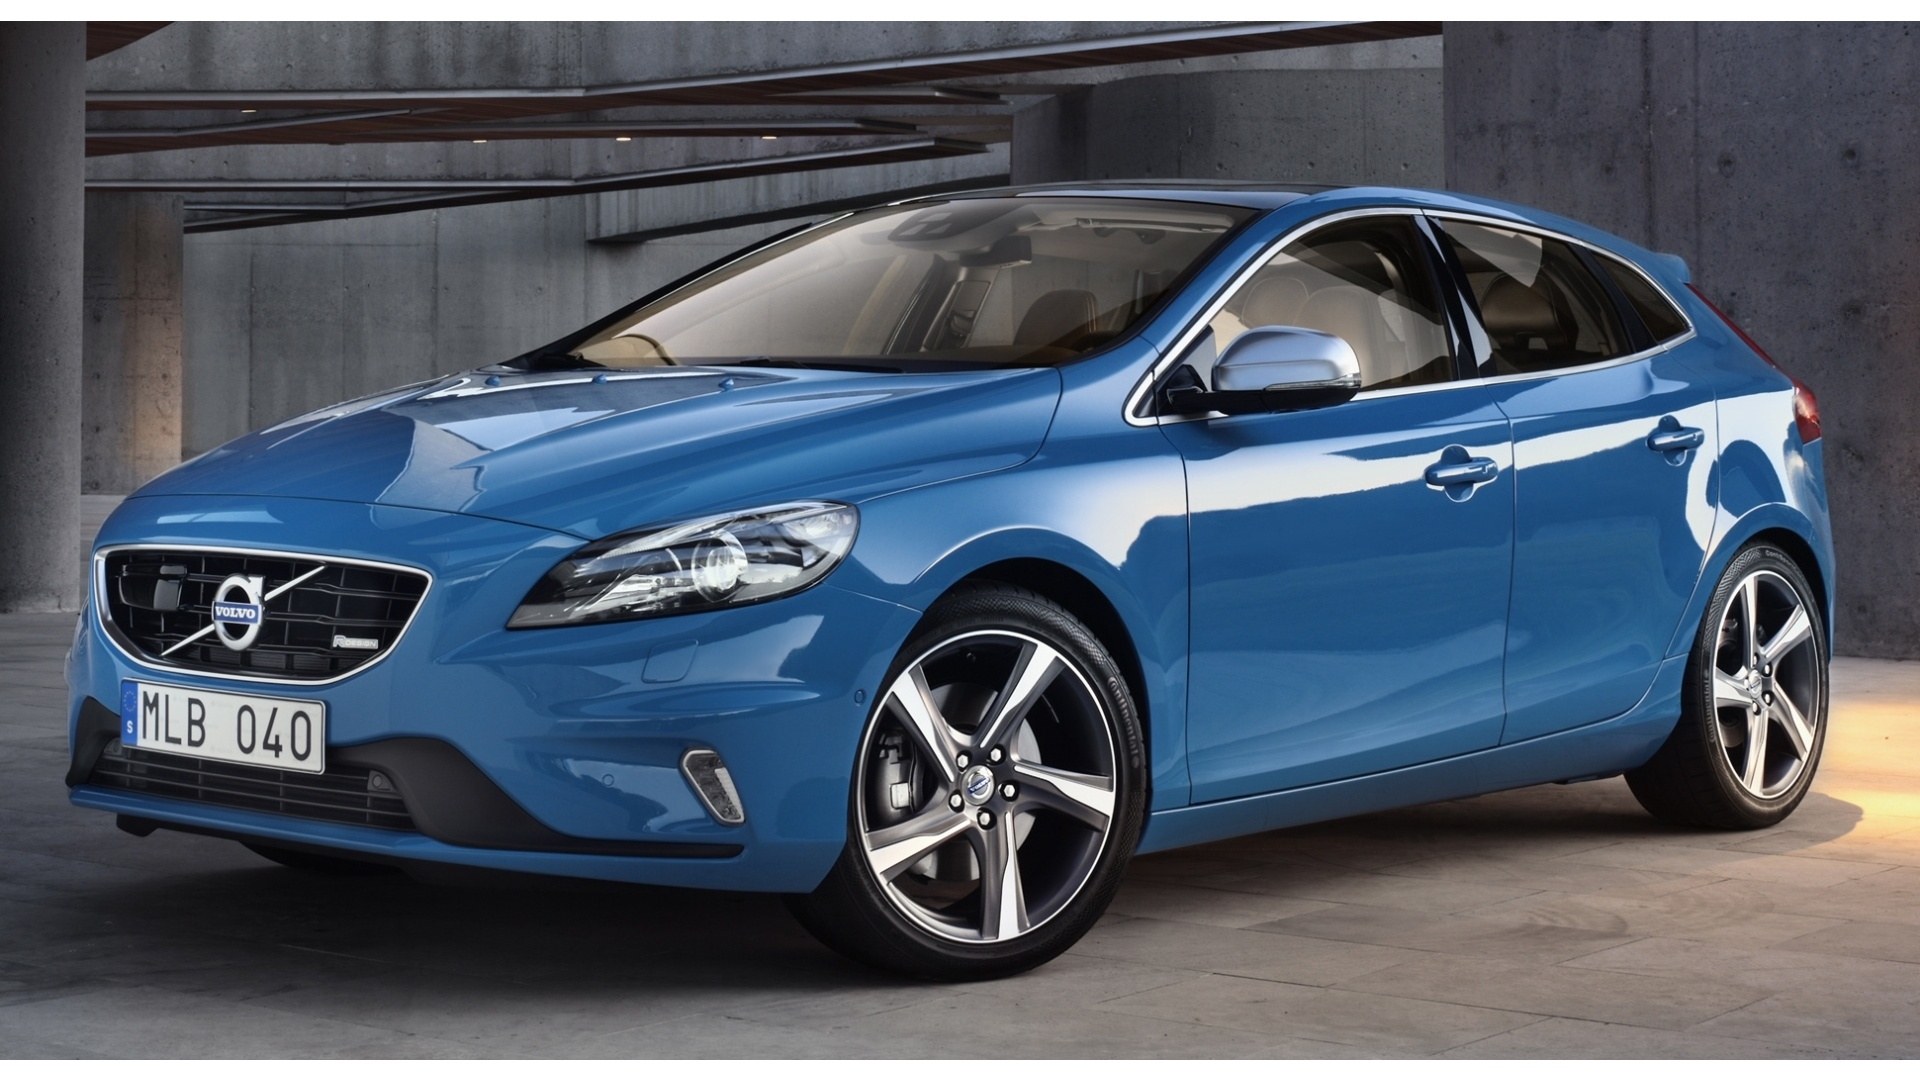 volvo v40 r design wallpapers 1920x1080 530566. Black Bedroom Furniture Sets. Home Design Ideas